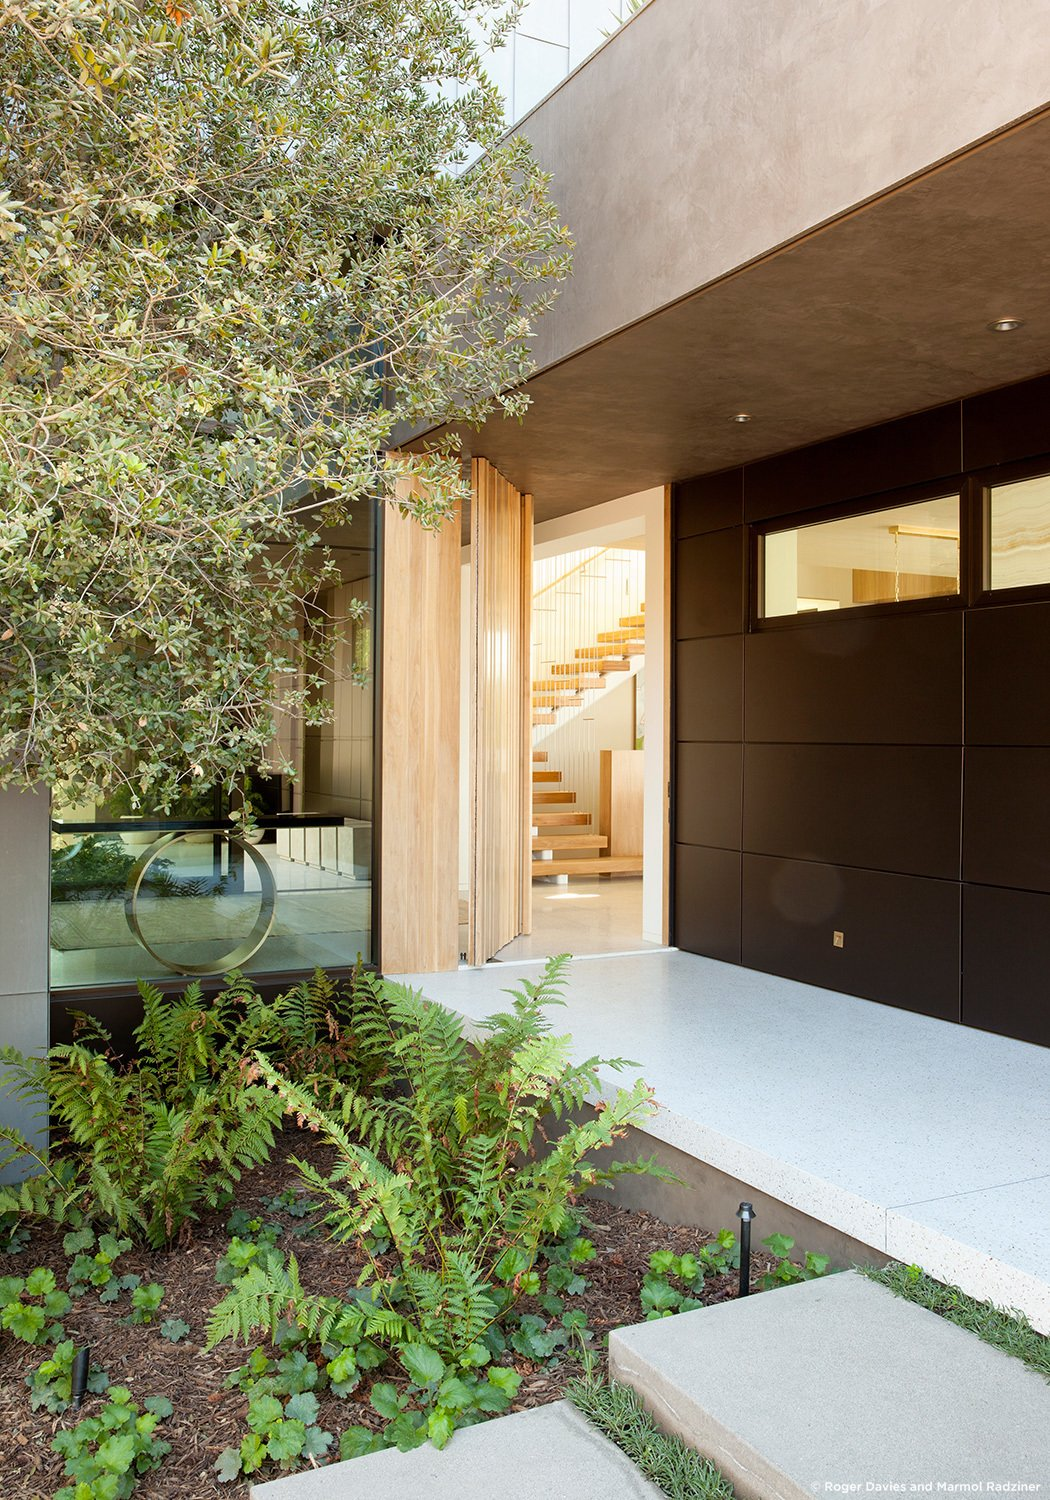 #SummitridgeResidence #modern #midcentury #levels #exterior #outside #outdoor #landscape #green #geometry #interior #staircase #structure #BeverlyHills #MarmolRadziner  Summitridge Residence by Marmol Radziner